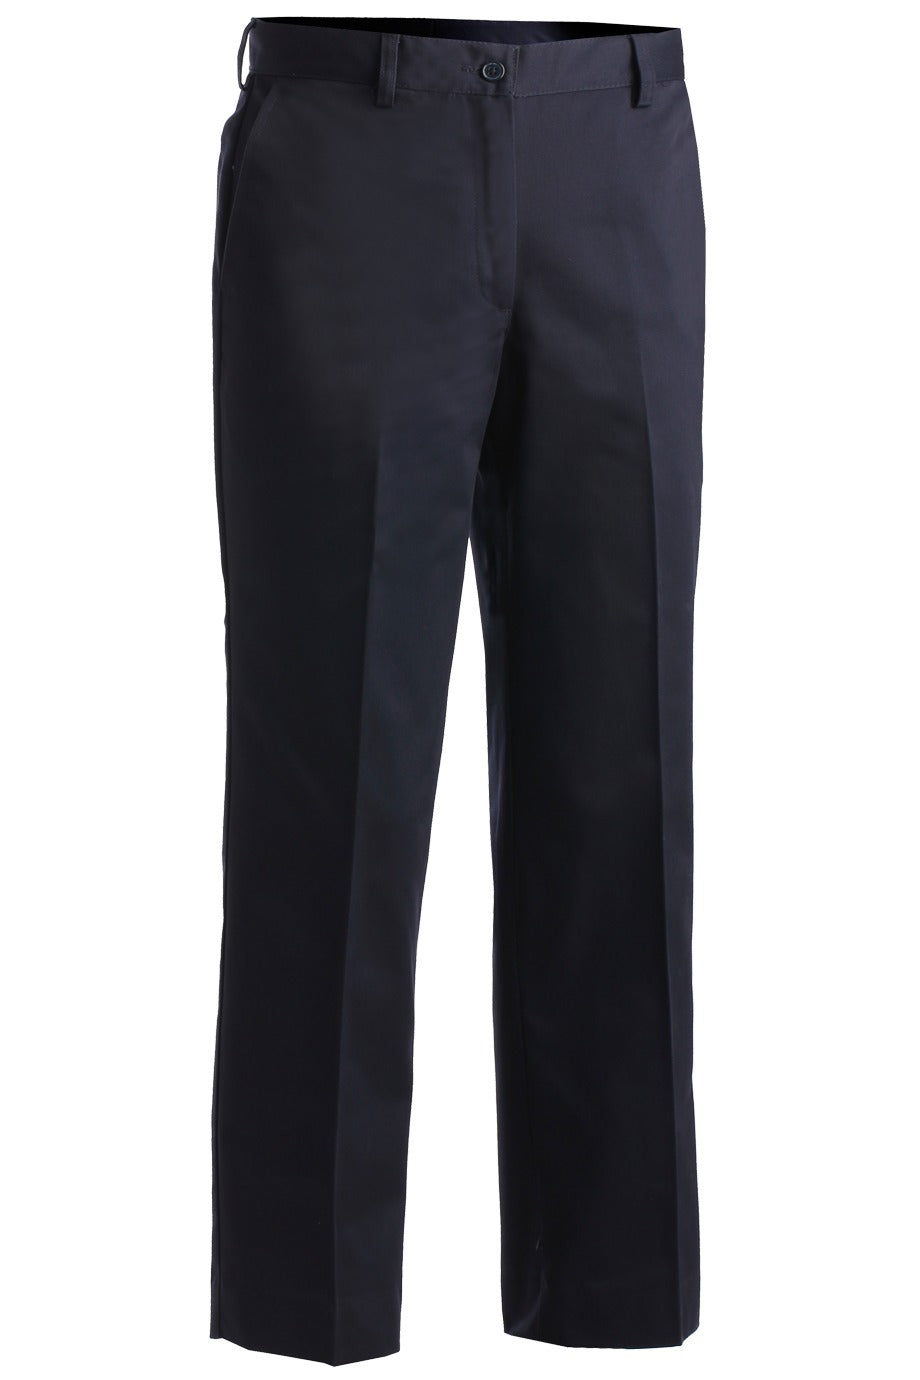 Women's Navy Utility Flat Front Chino Pant